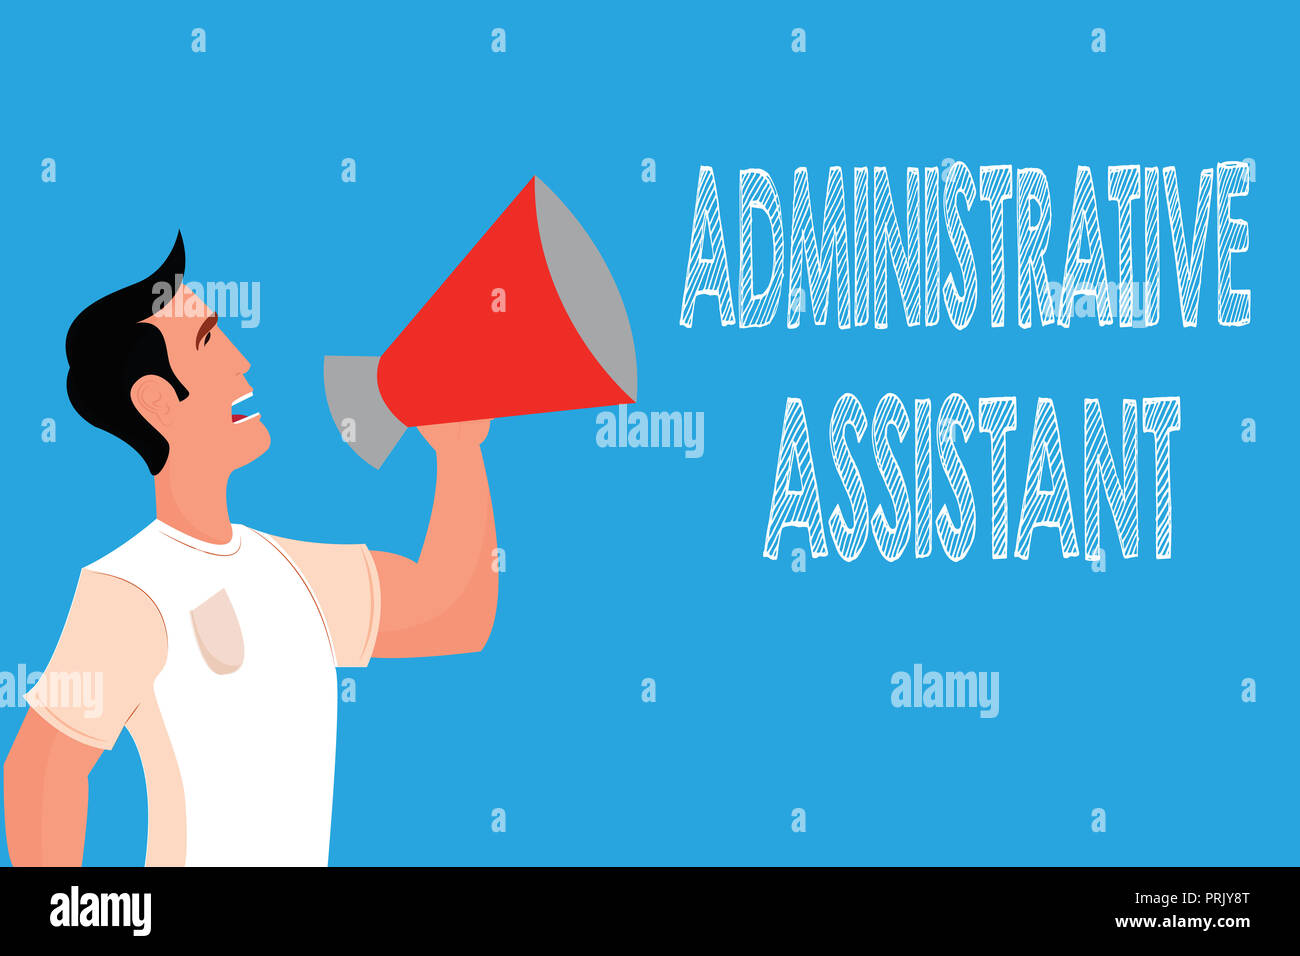 concept of administration